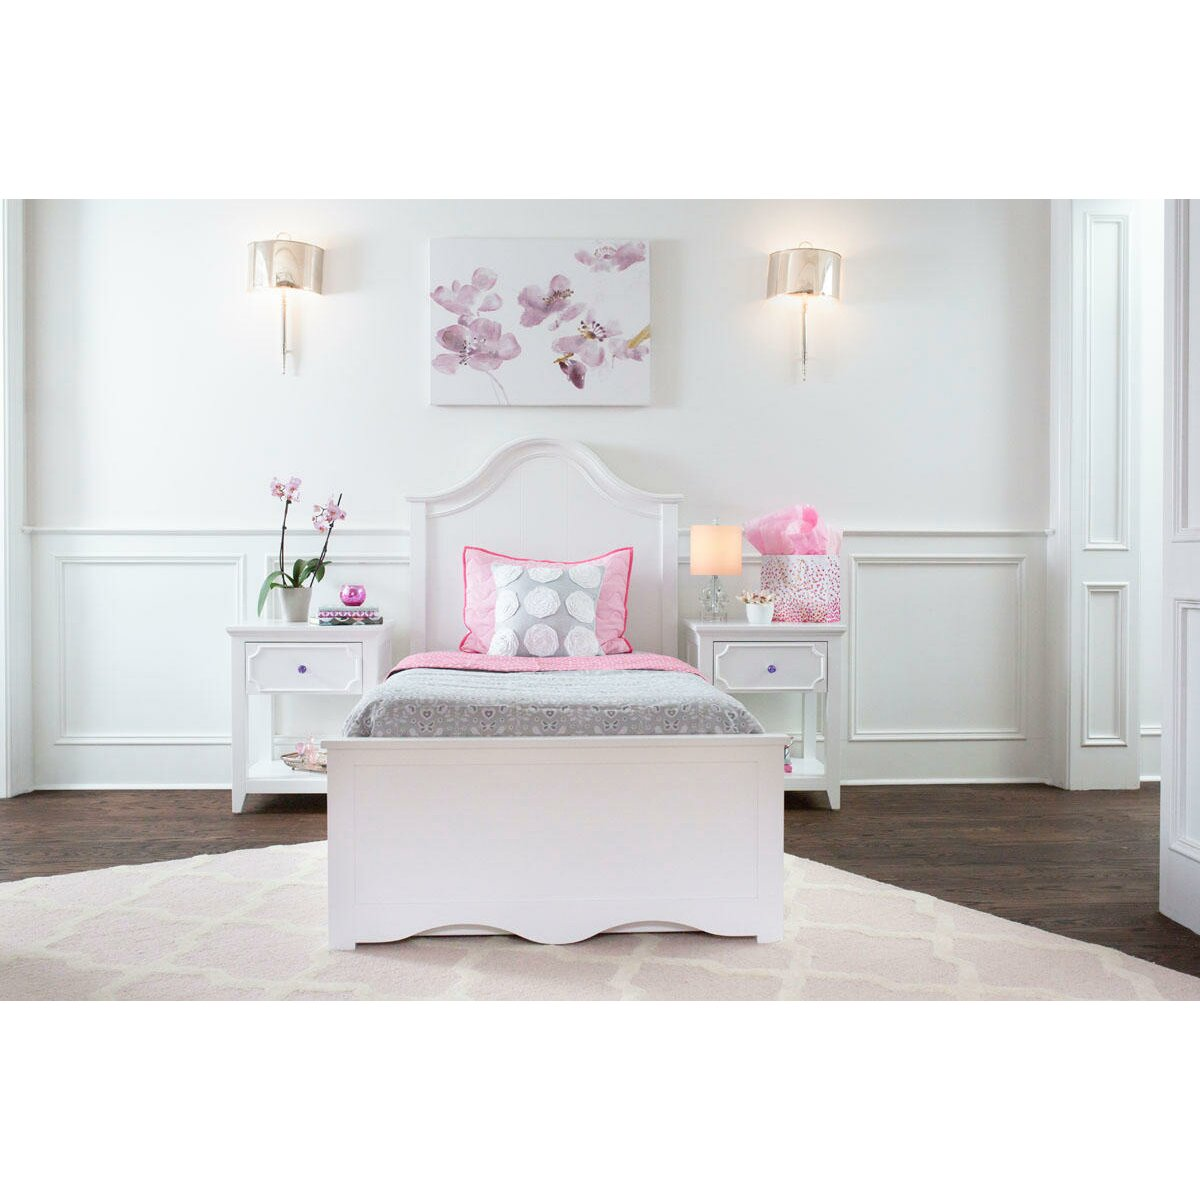 Craft kids furniture charleston twin panel bed with for Kids craft bed